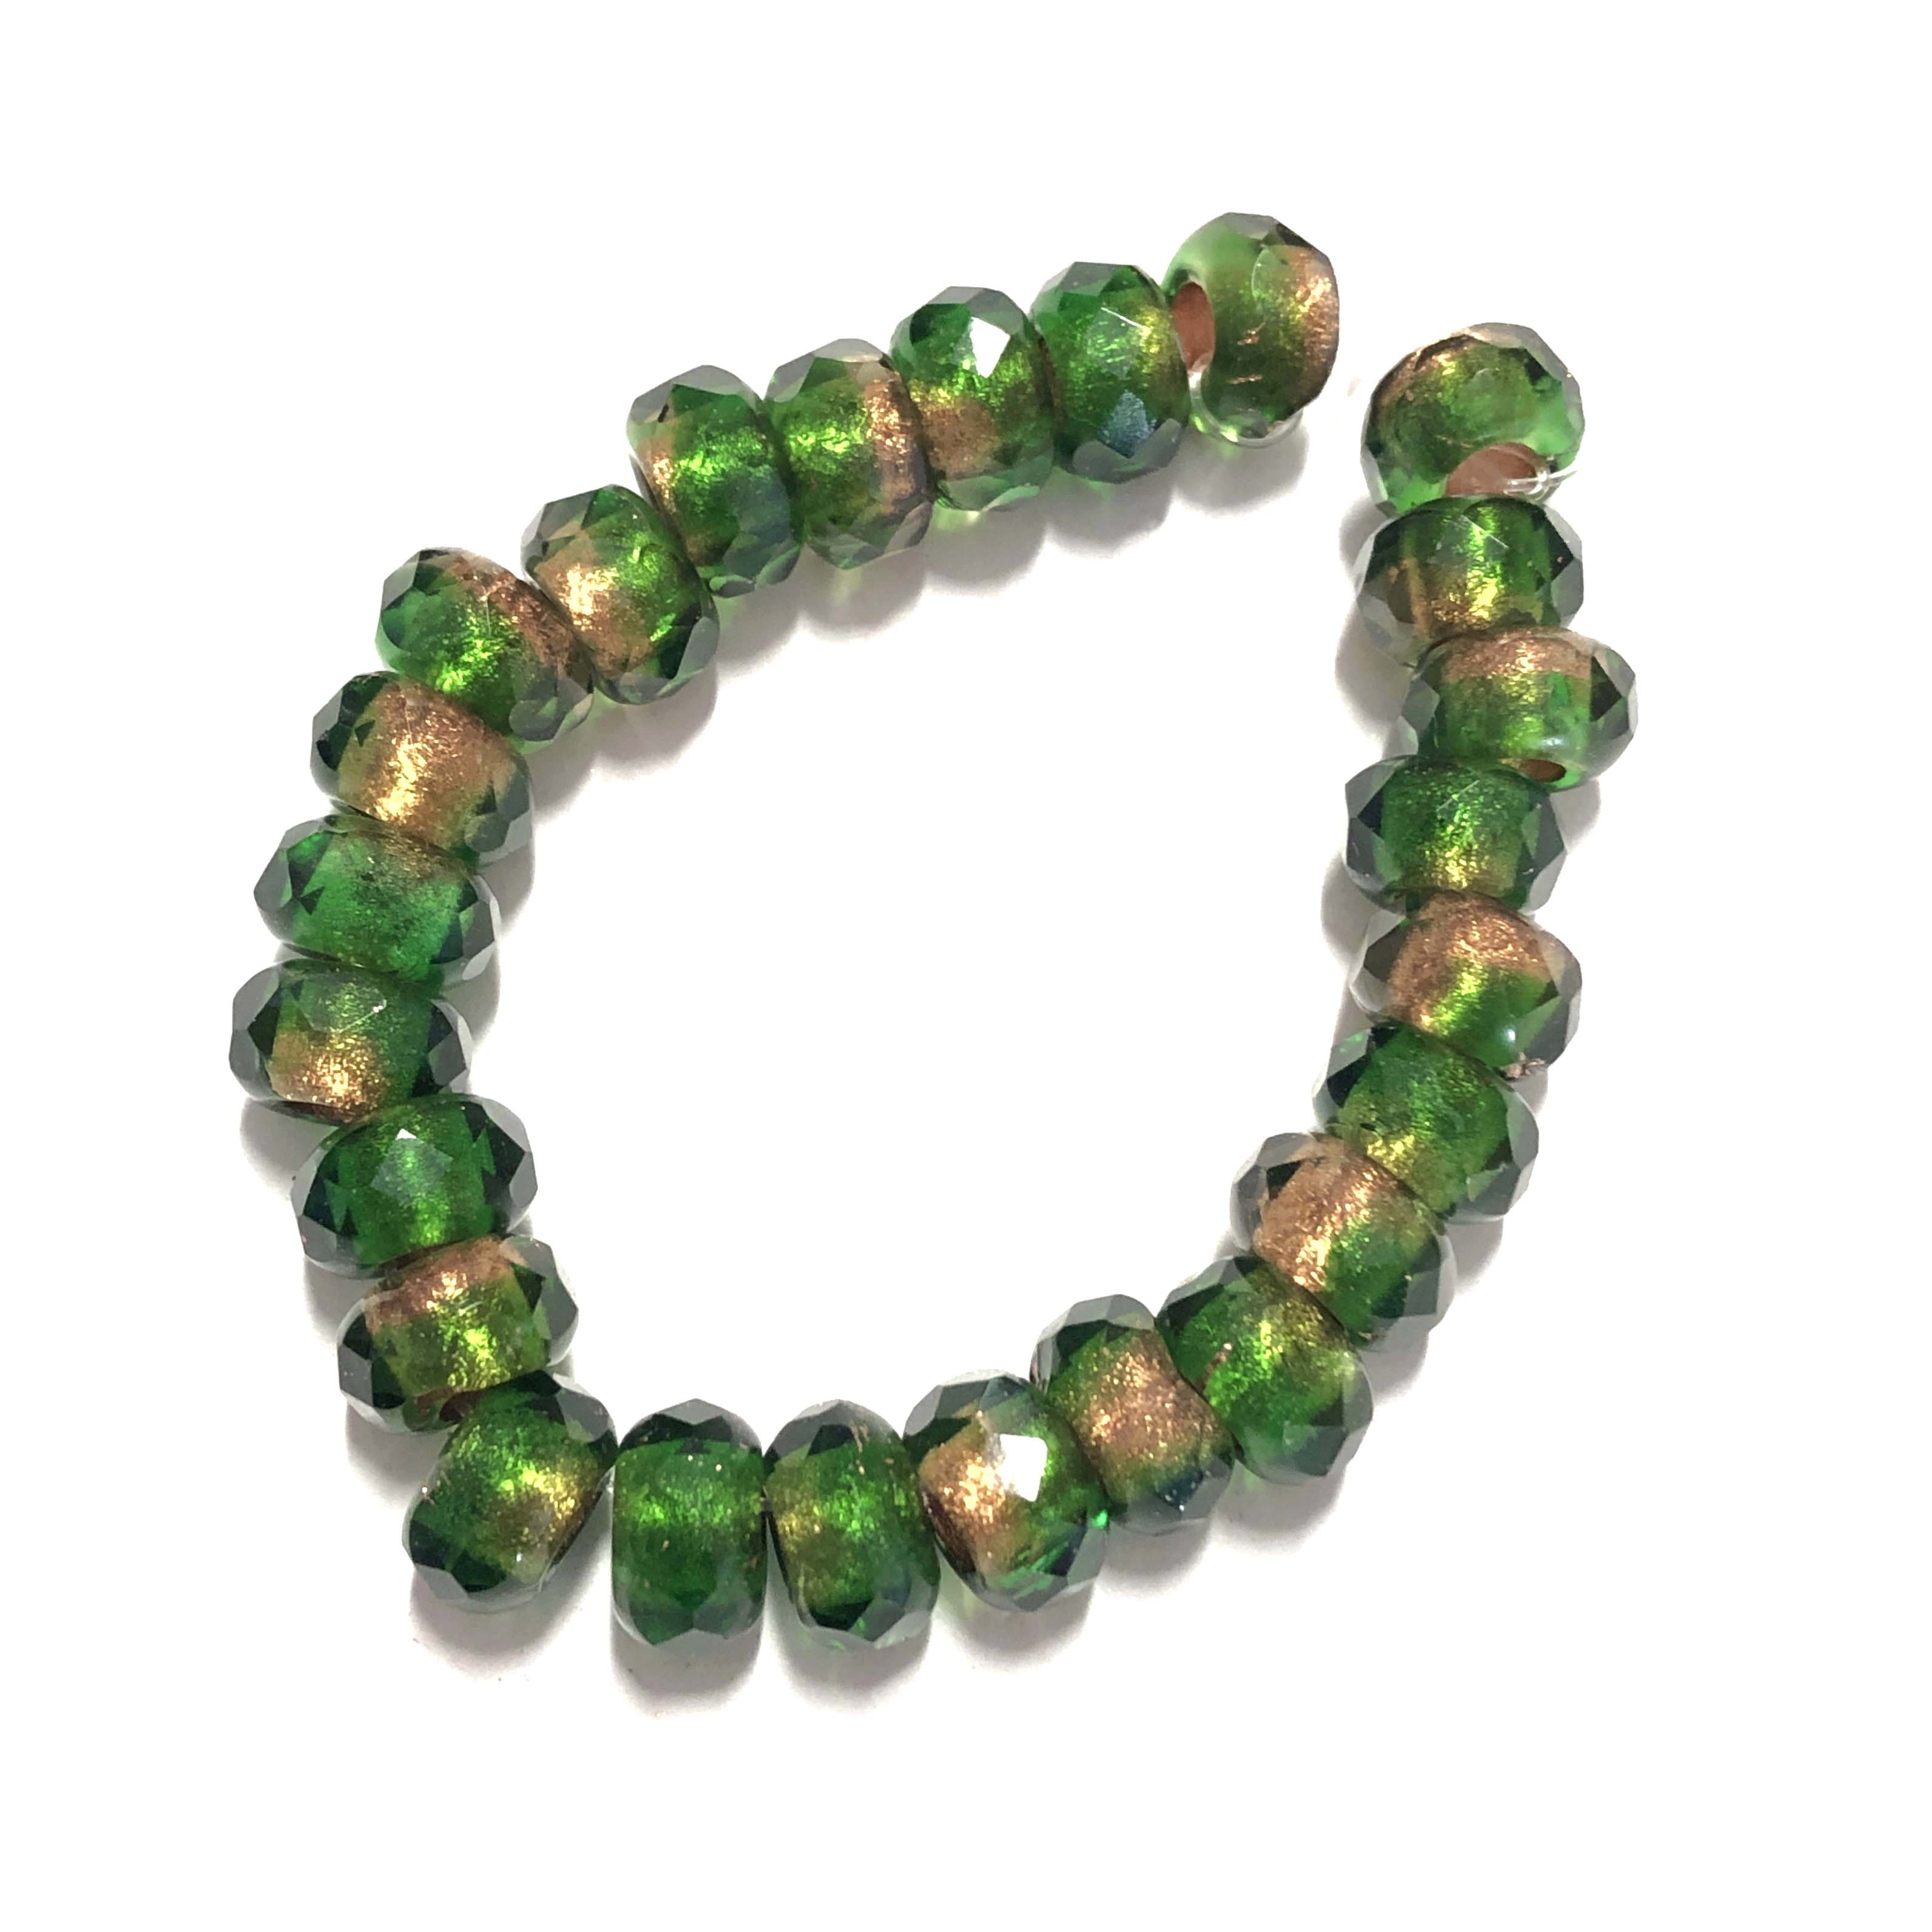 Faceted Rondelle Roller beads, green beads, rondelle beads, faceted, glass beads, czech glass, 6x9mm, jewelry making, beading supplies, jewelry supplies, vintage supplies, firepolished beads, 0918